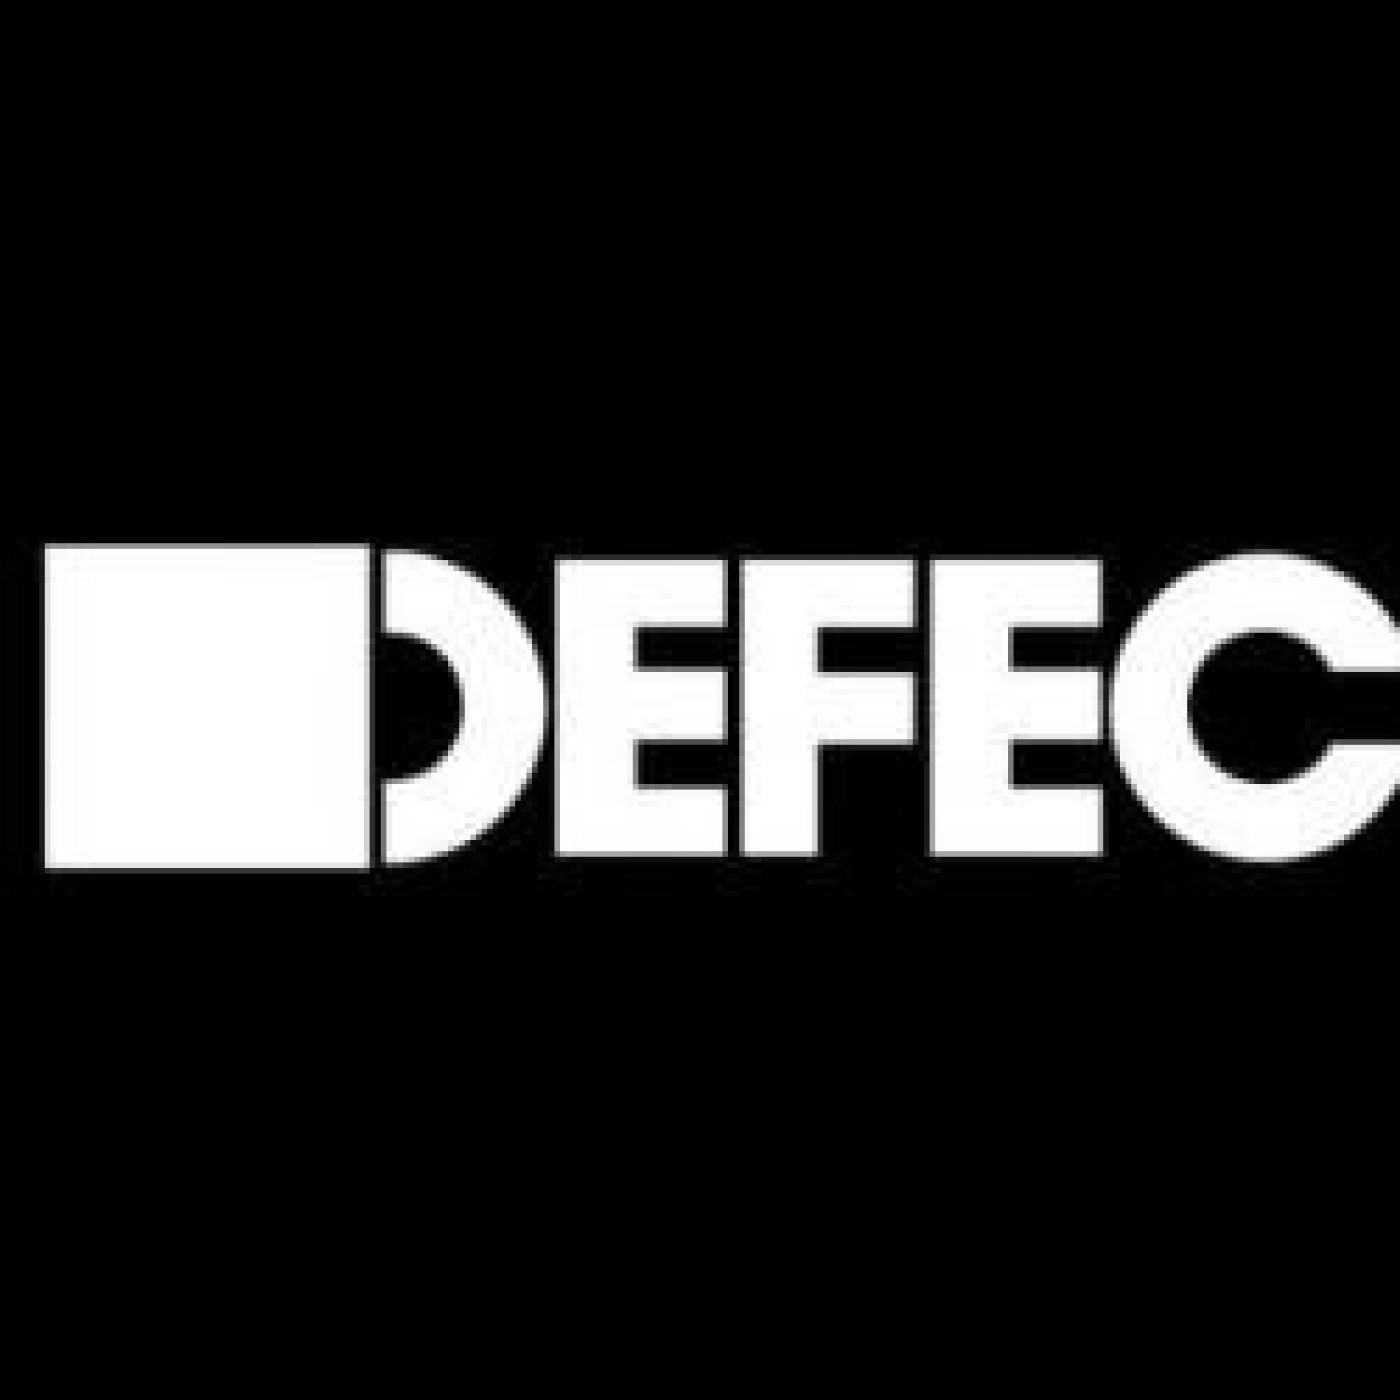 COURS D'ELECTRO DEFECTED